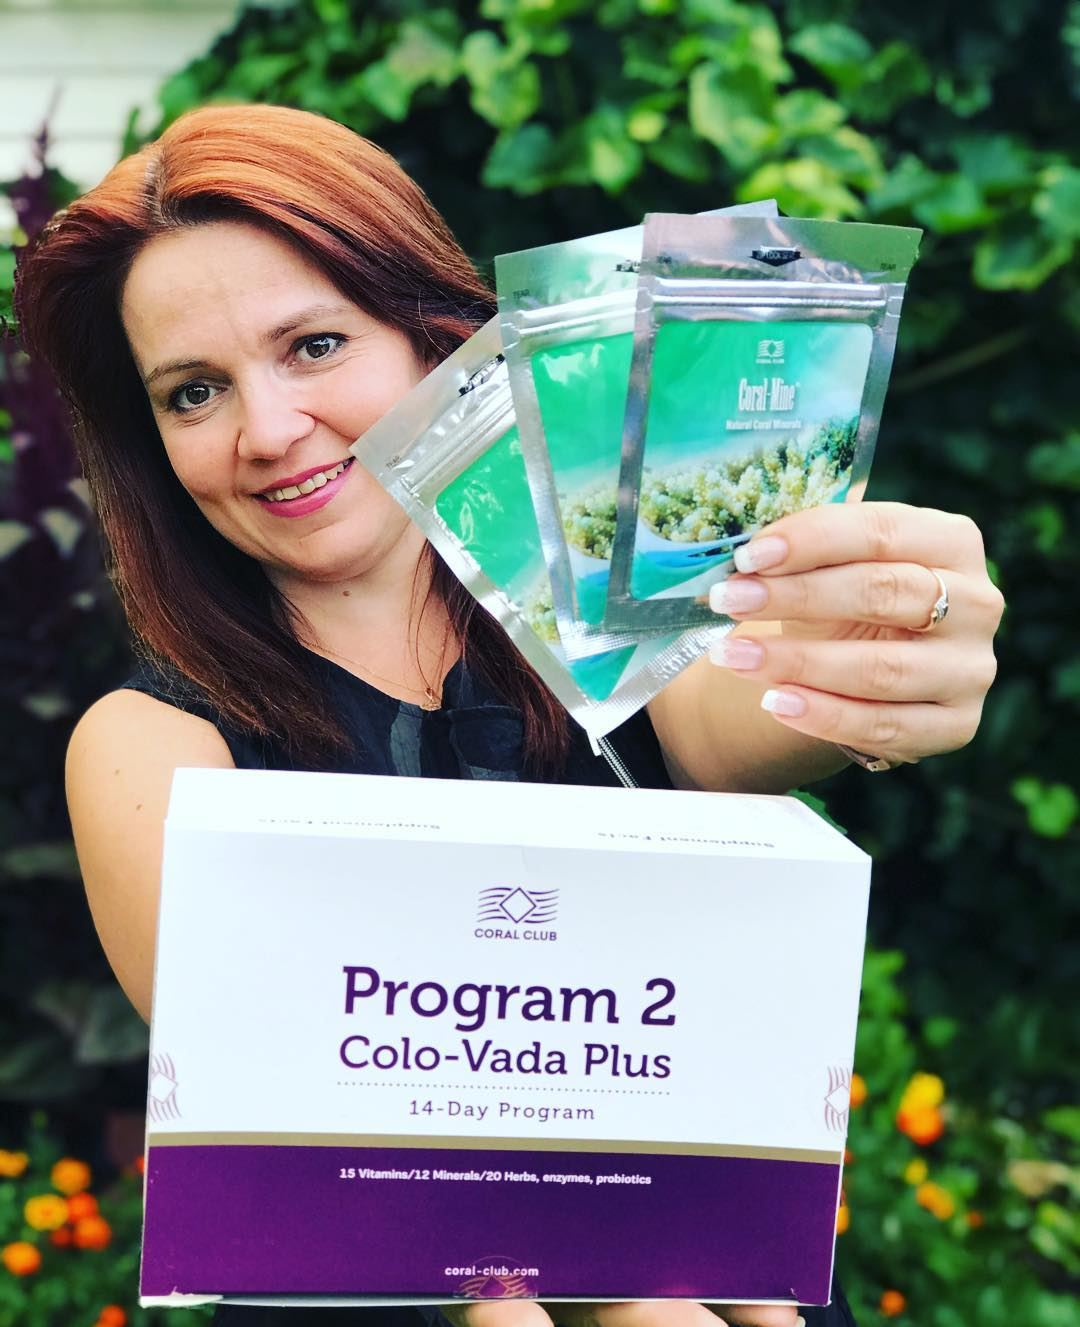 Colo-Vada Pack colo vada pack coralclub